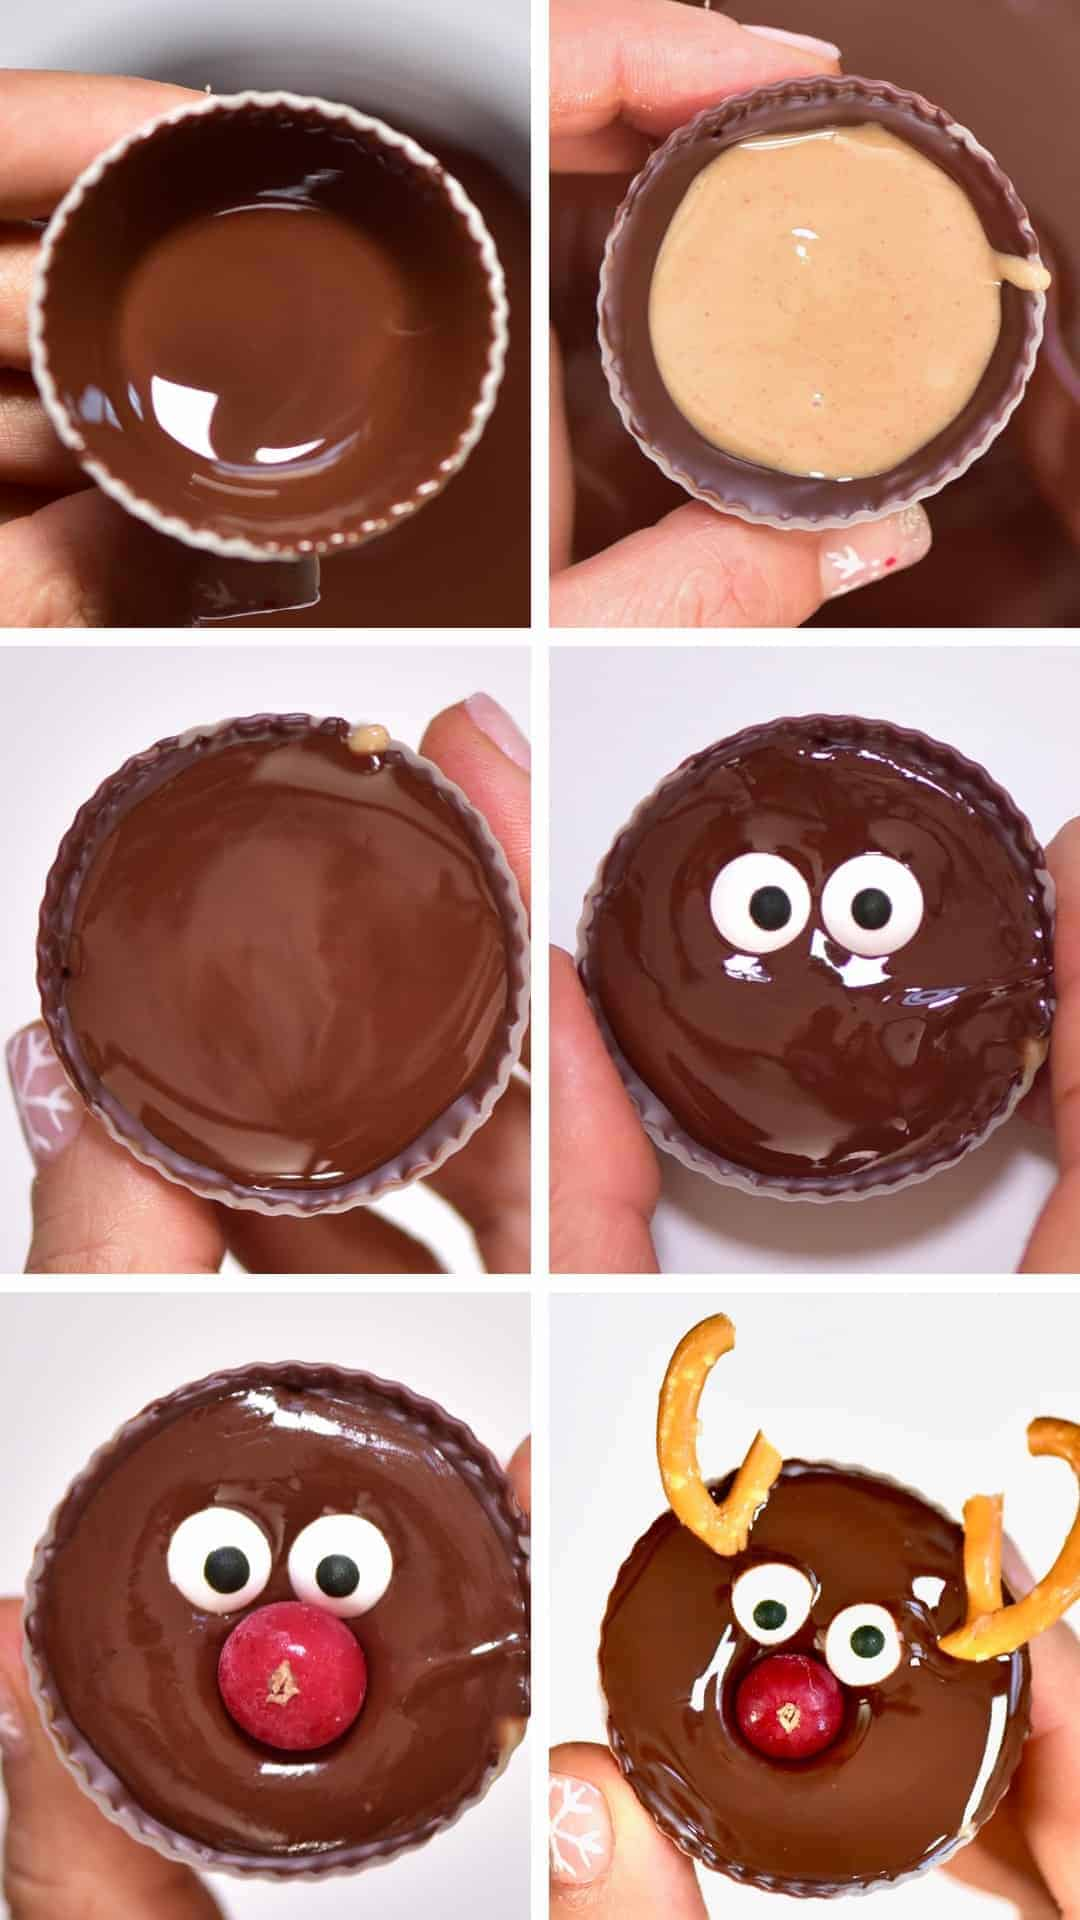 Steps to making Reindeer Chocolate Peanut Butter Cups